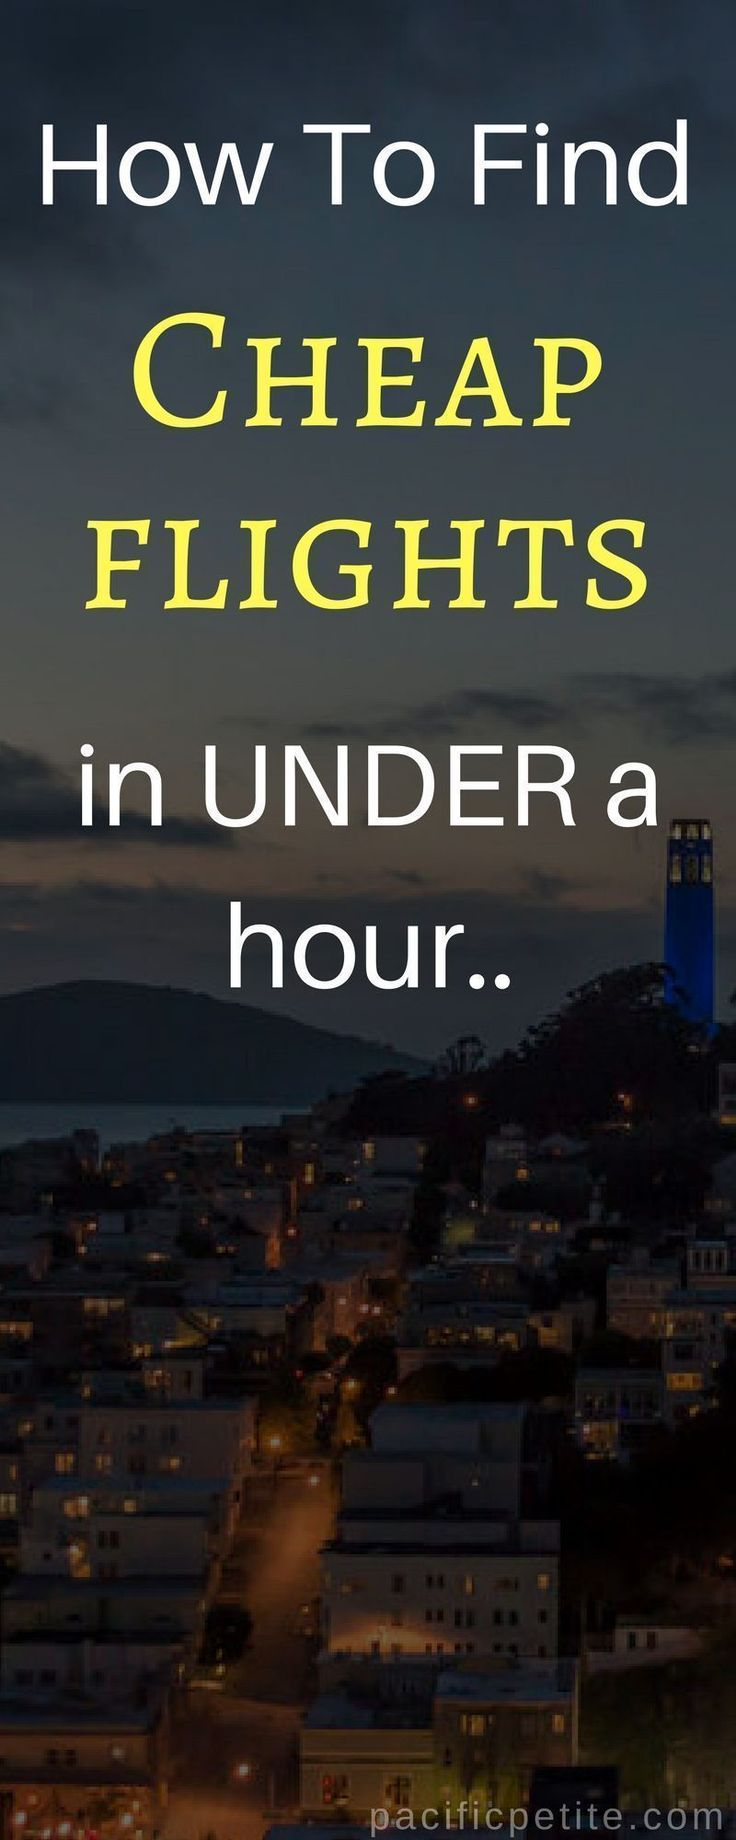 Are you traveling on a budget and looking to find cheap flights fast? I will show you how to fly to any destination on an affordable flight. Quench your wanderlust and cross off locations from your bucket list with these travel hacks.  I'll show you the perfect travel hacks to find travel deals. #cheapflights #cheapestflights #traveldeals #traveldestinationsaffordable